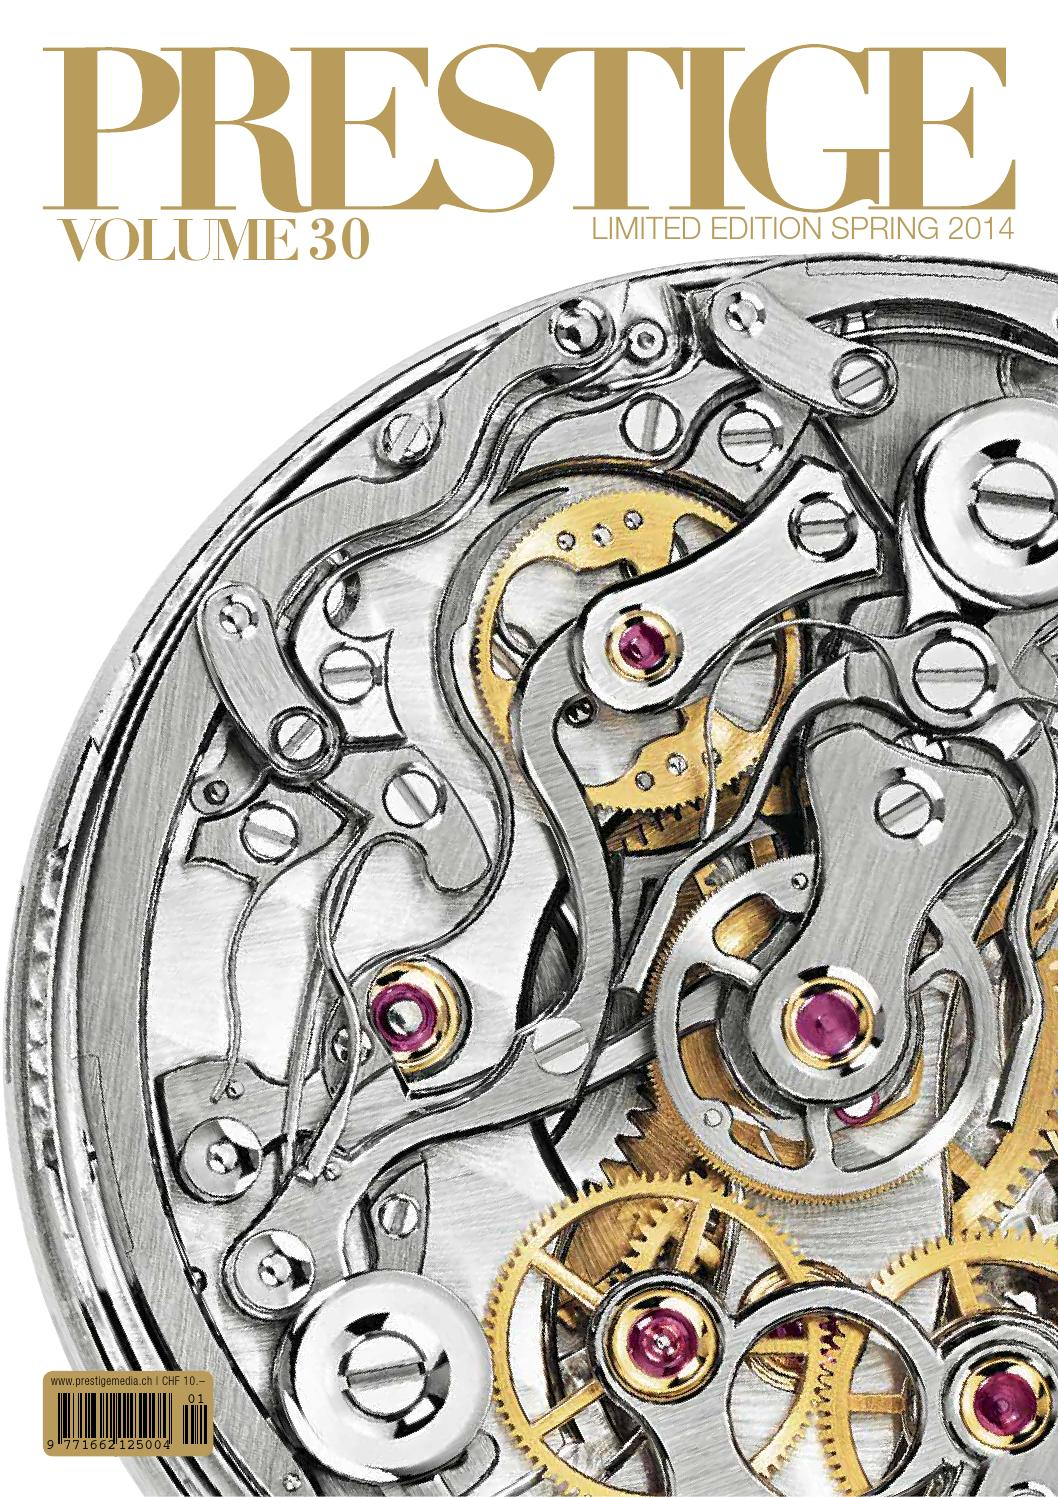 PRESTIGE Switzerland Volume 30 by rundschauMEDIEN AG - issuu